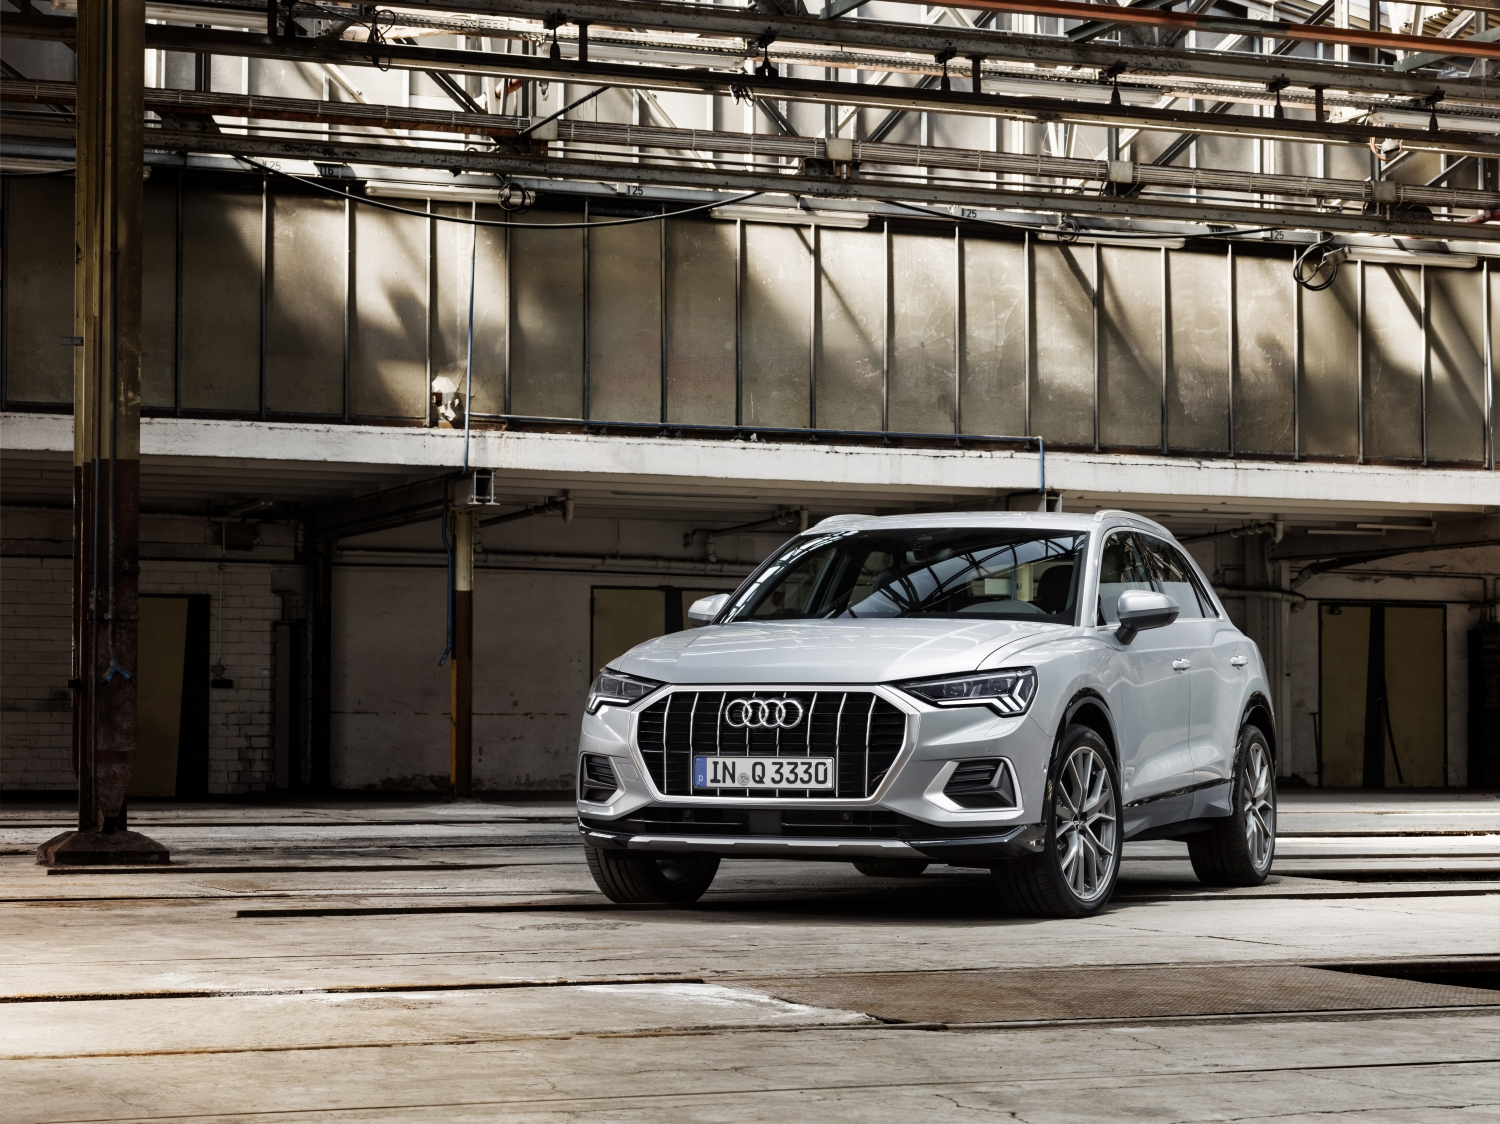 Motormouth's Review of the 2019 Audi Q3 - The Unofficial